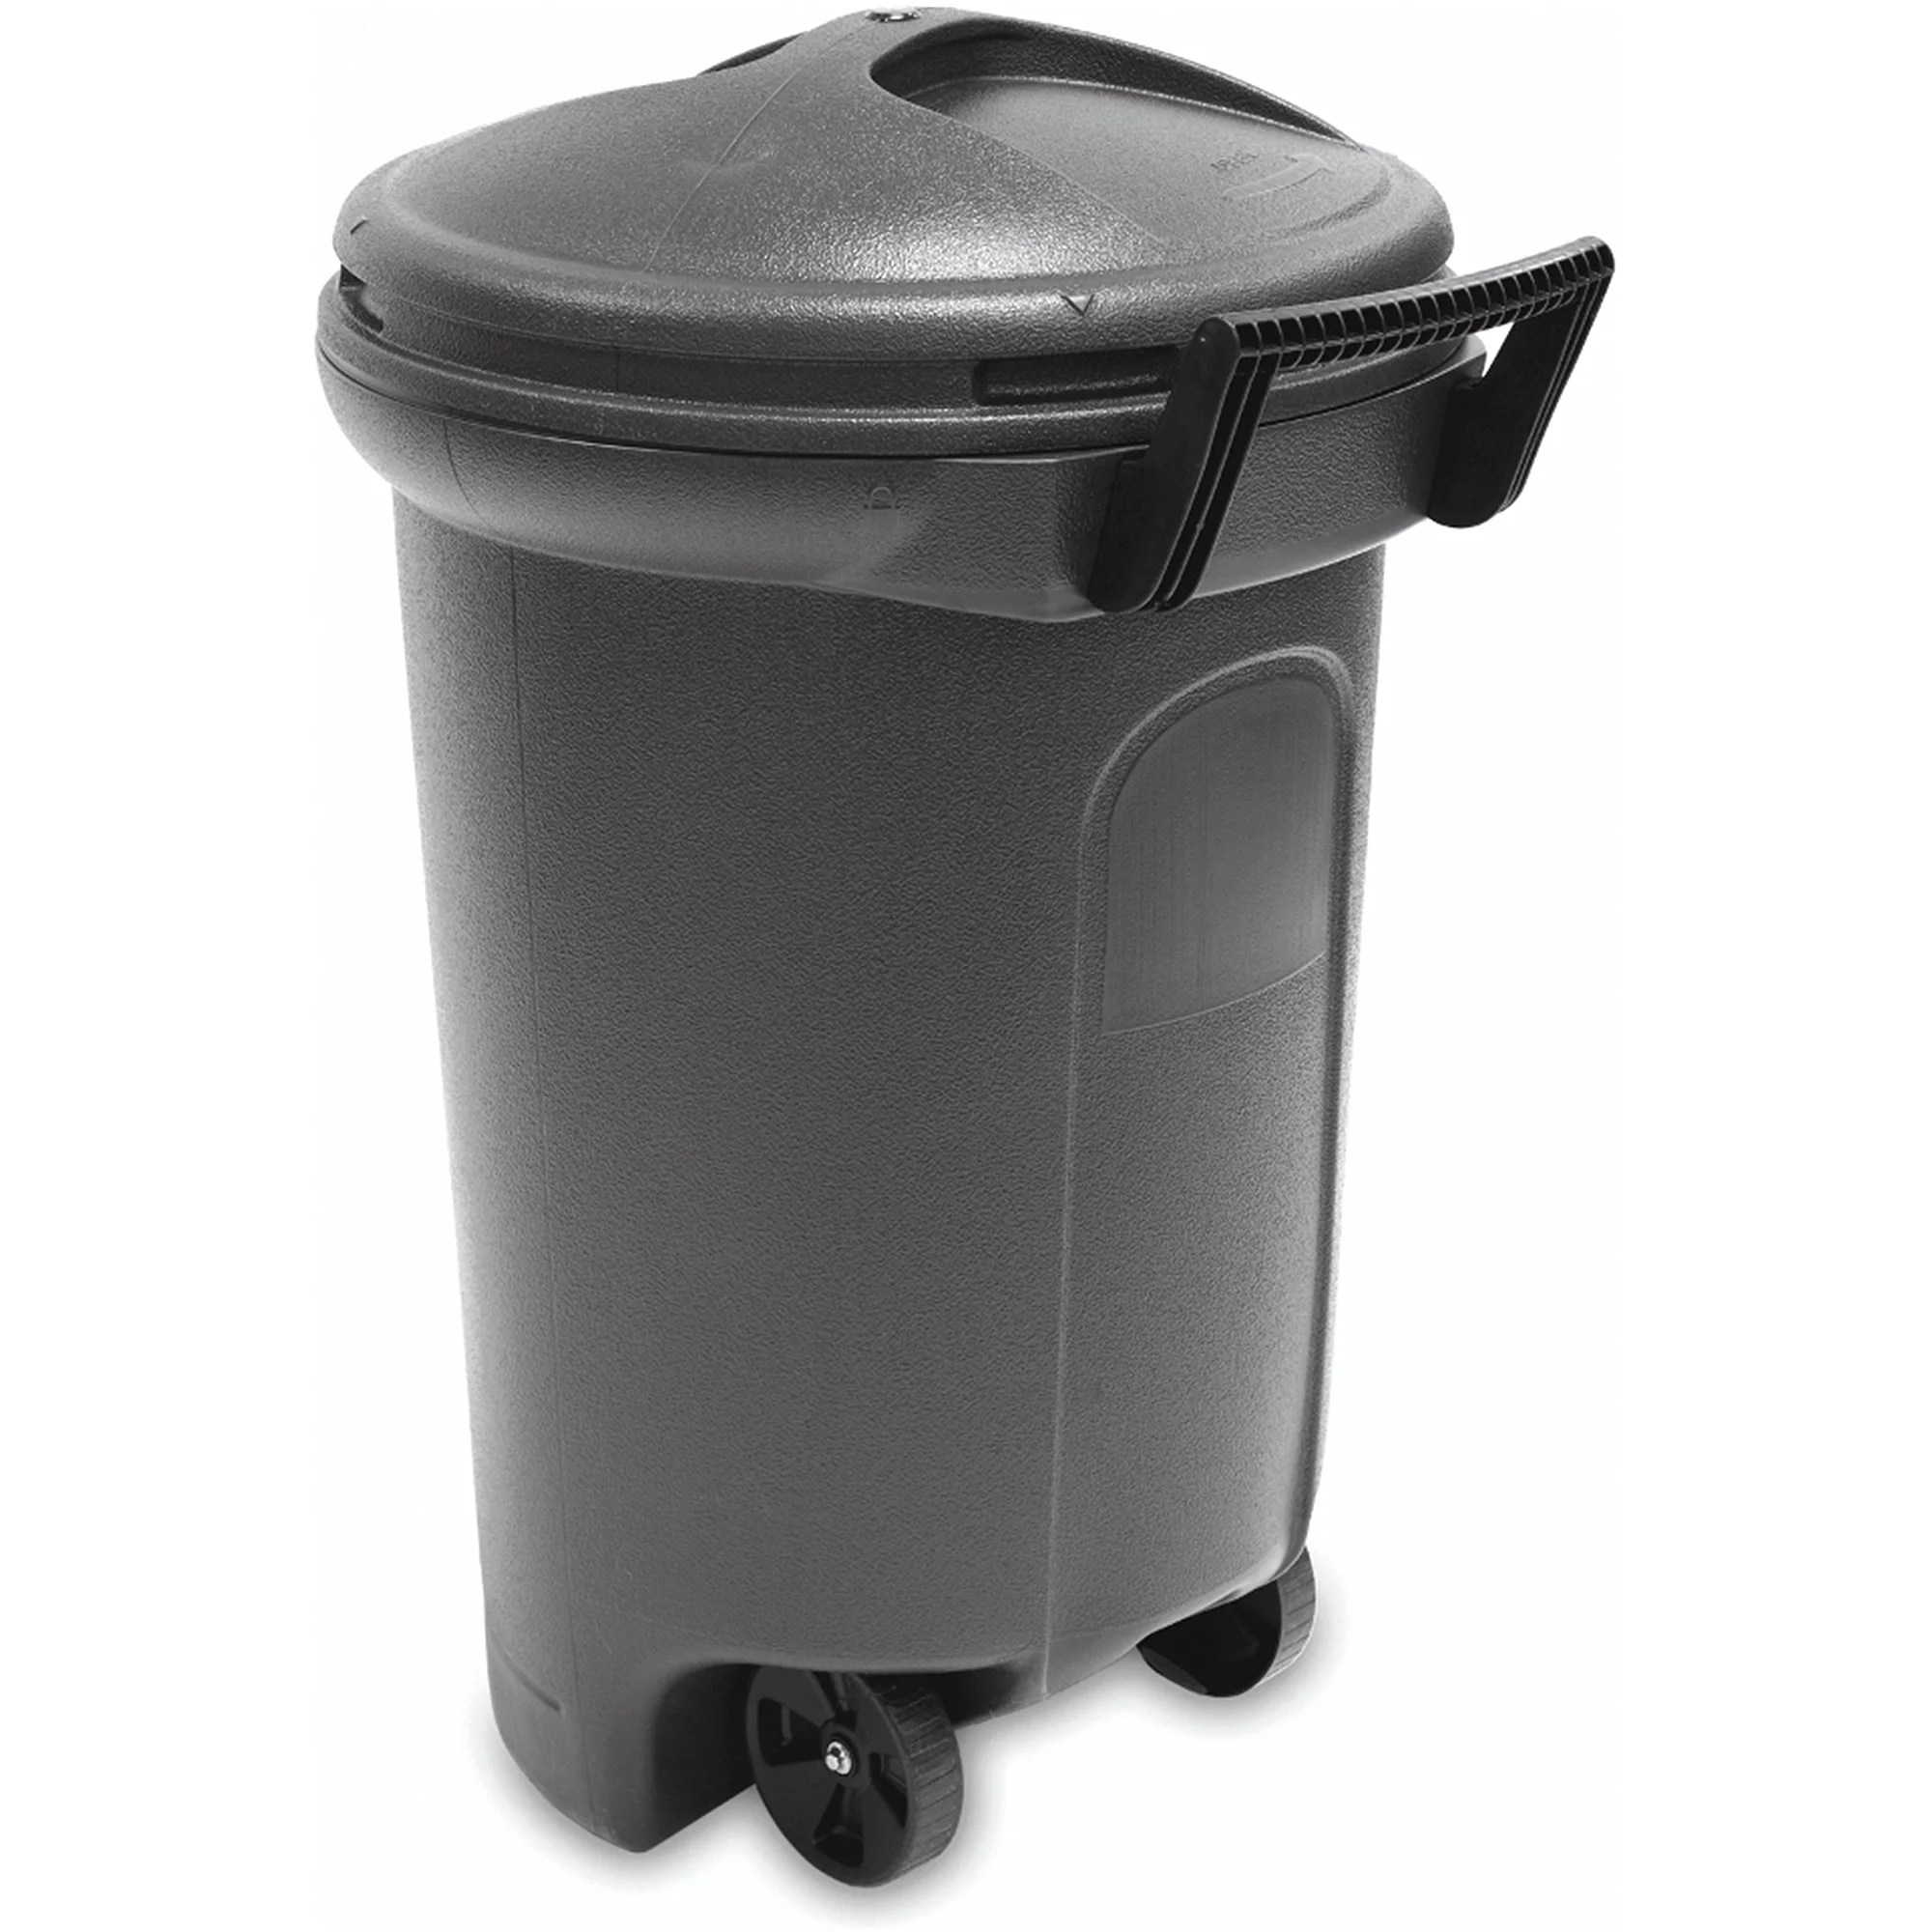 Garbage Bins Walmart Hefty 7 Gal Textured Step On Trash Can With Lid Lock And Bottom Cap Multiple Colors